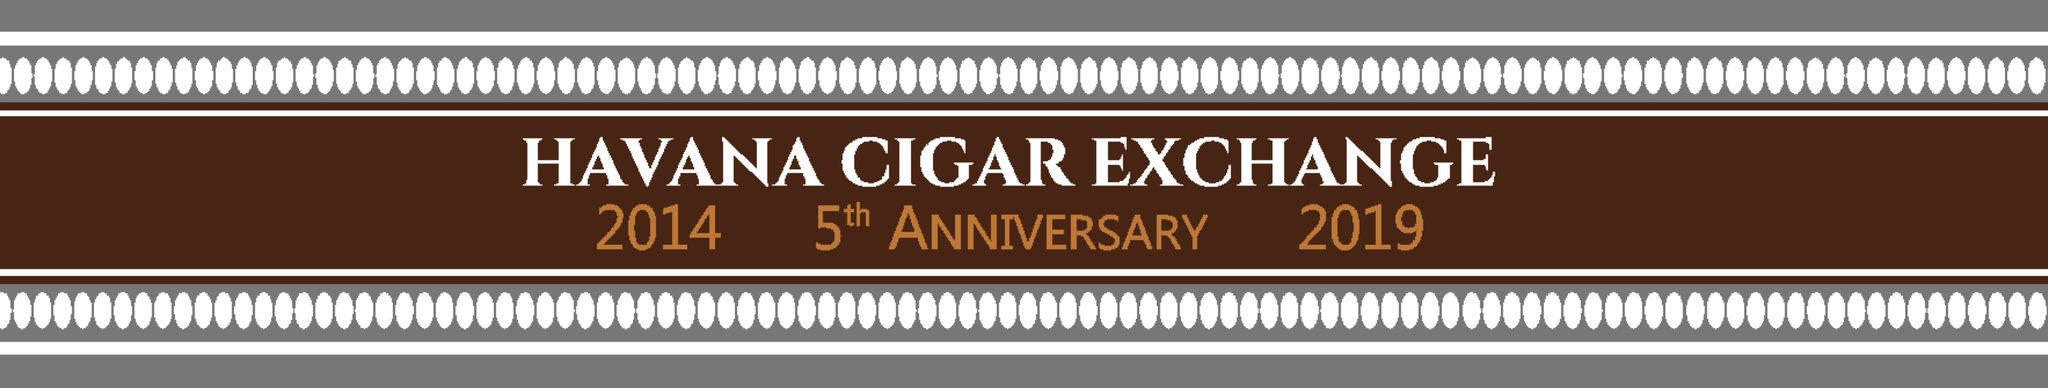 Havana Cigar Exchange 5th Anniversary